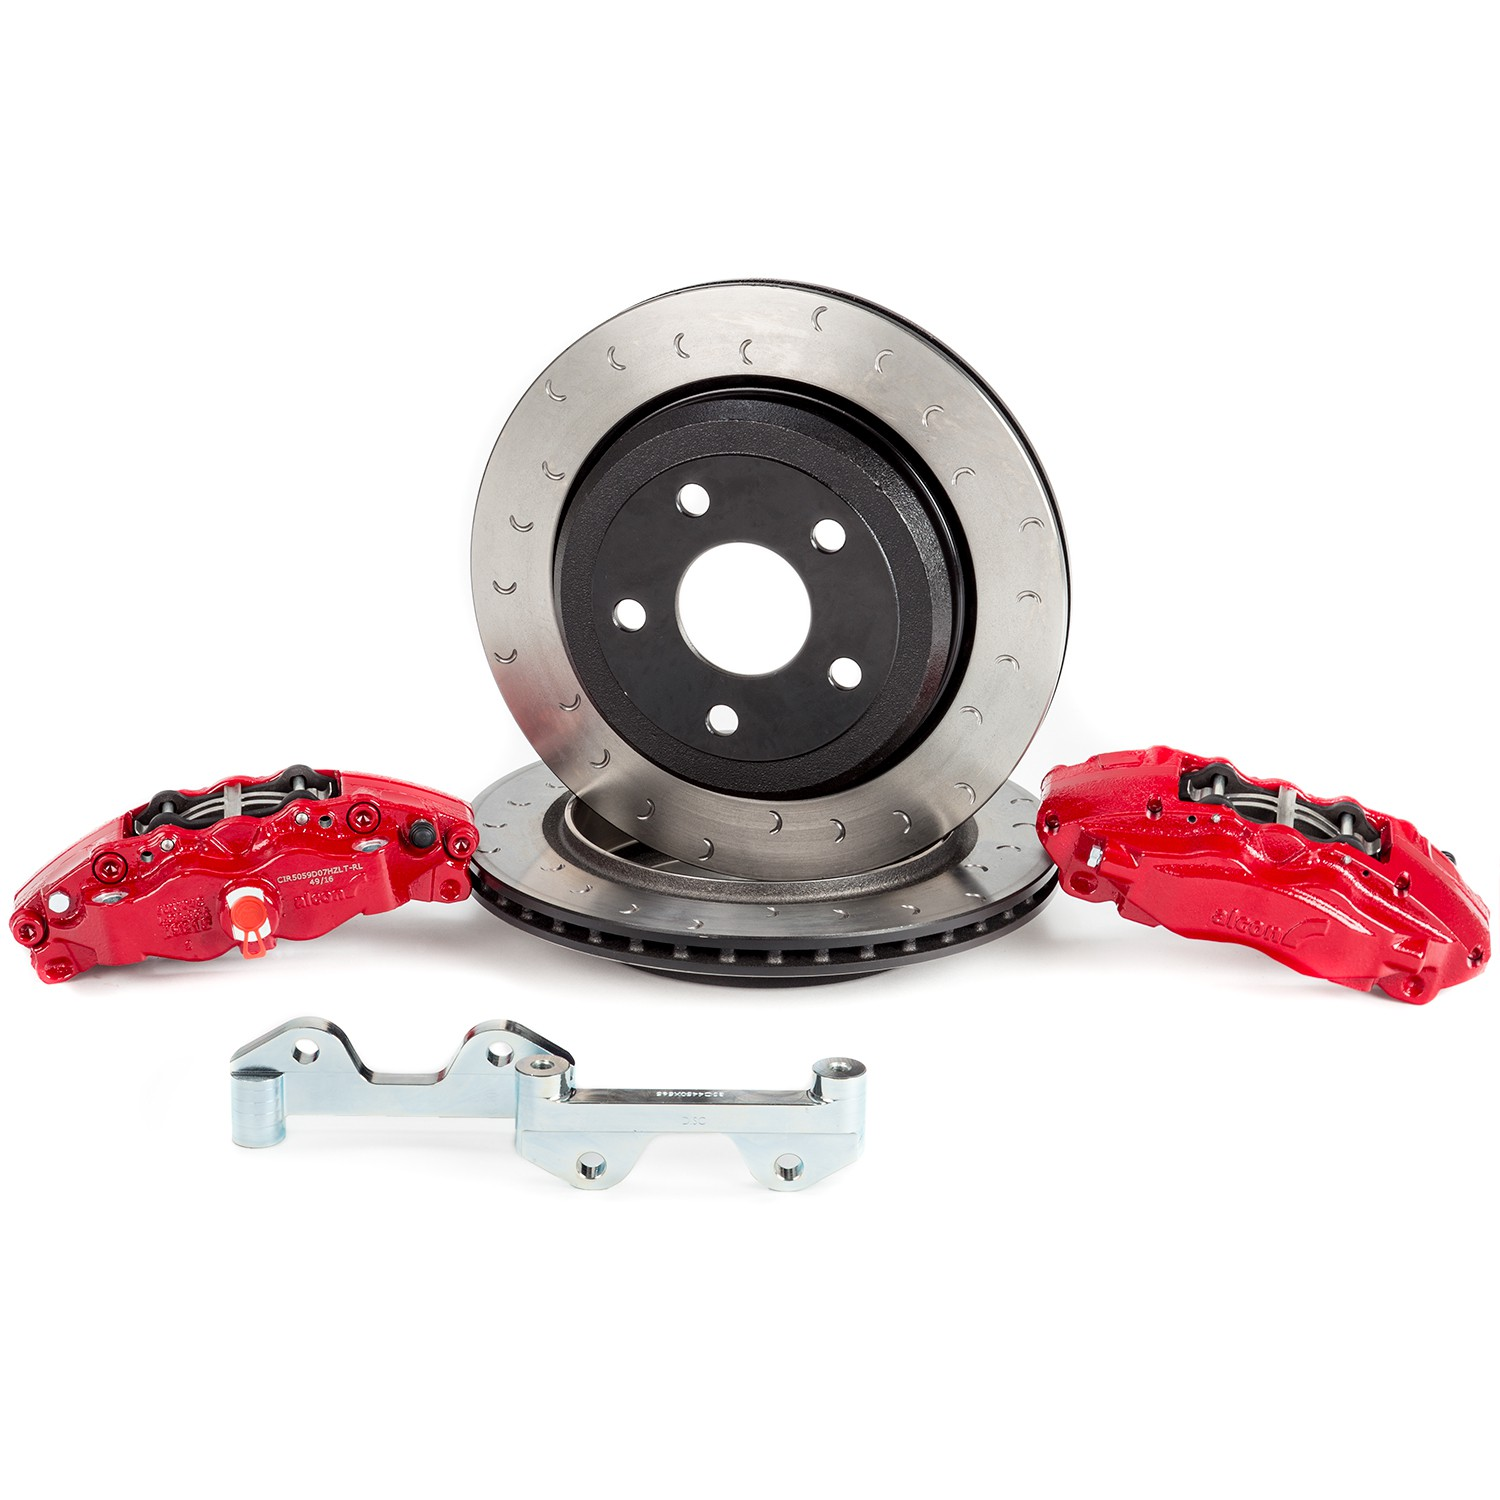 Alcon Jeep JL Dana 44 Rear Brake Kit